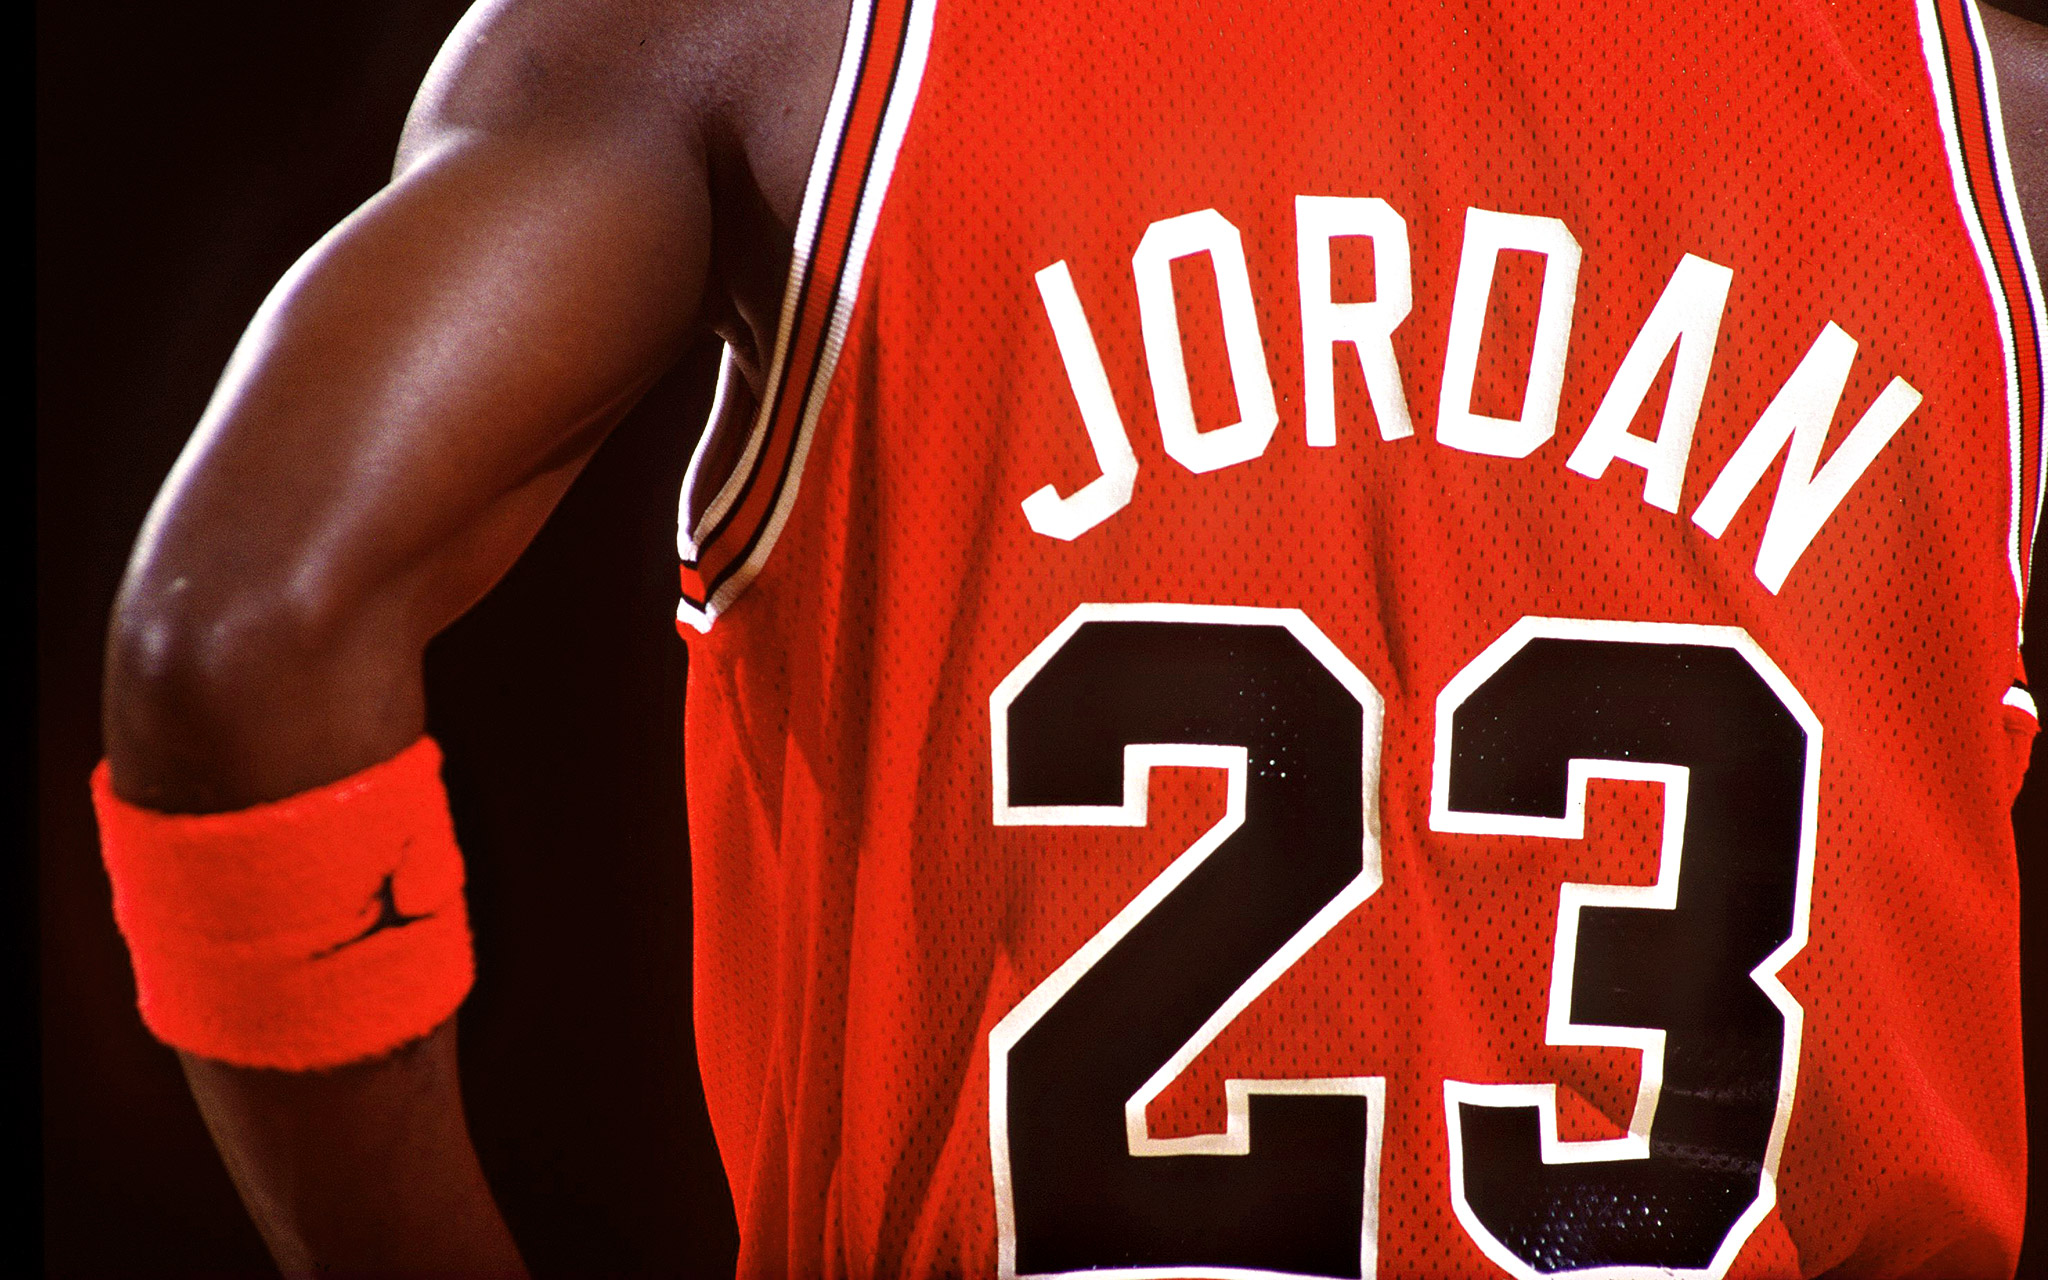 Michael Jordan Jersey Wallpaper